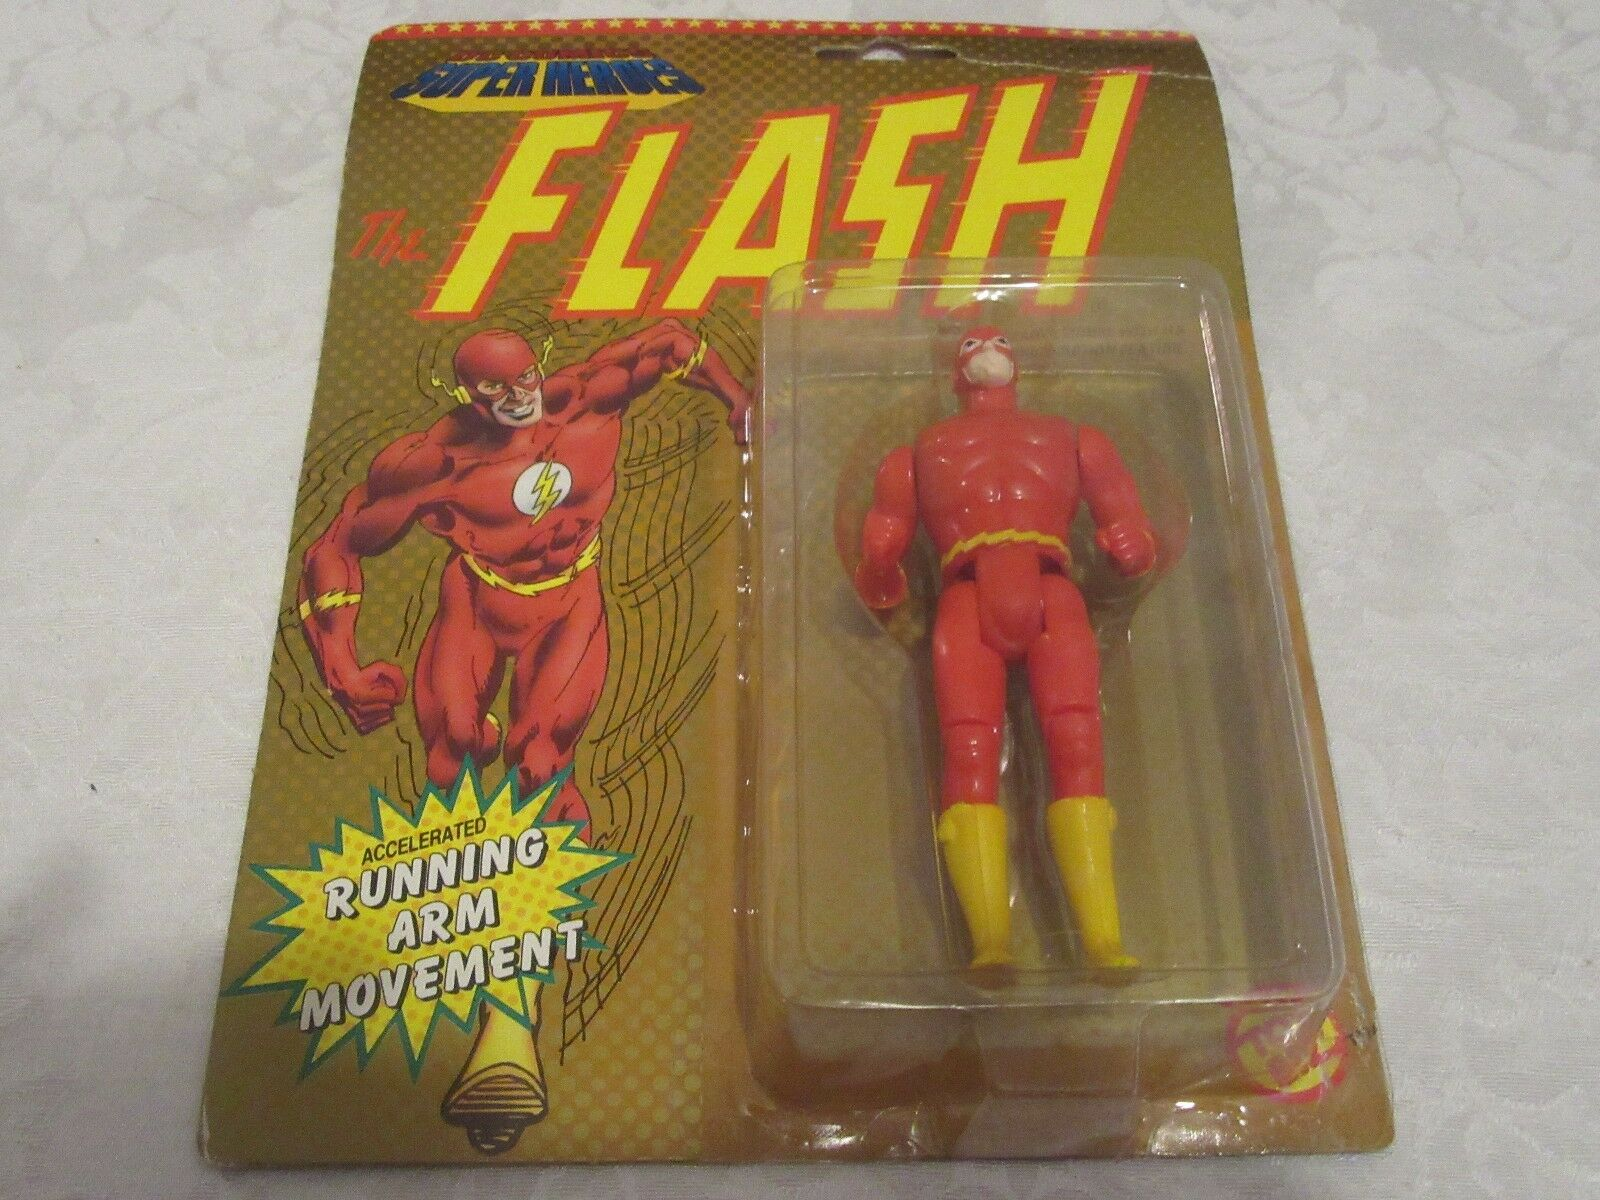 DC Comics Super Heroes The Flash Running Arm Movement No Symbol Logo Error